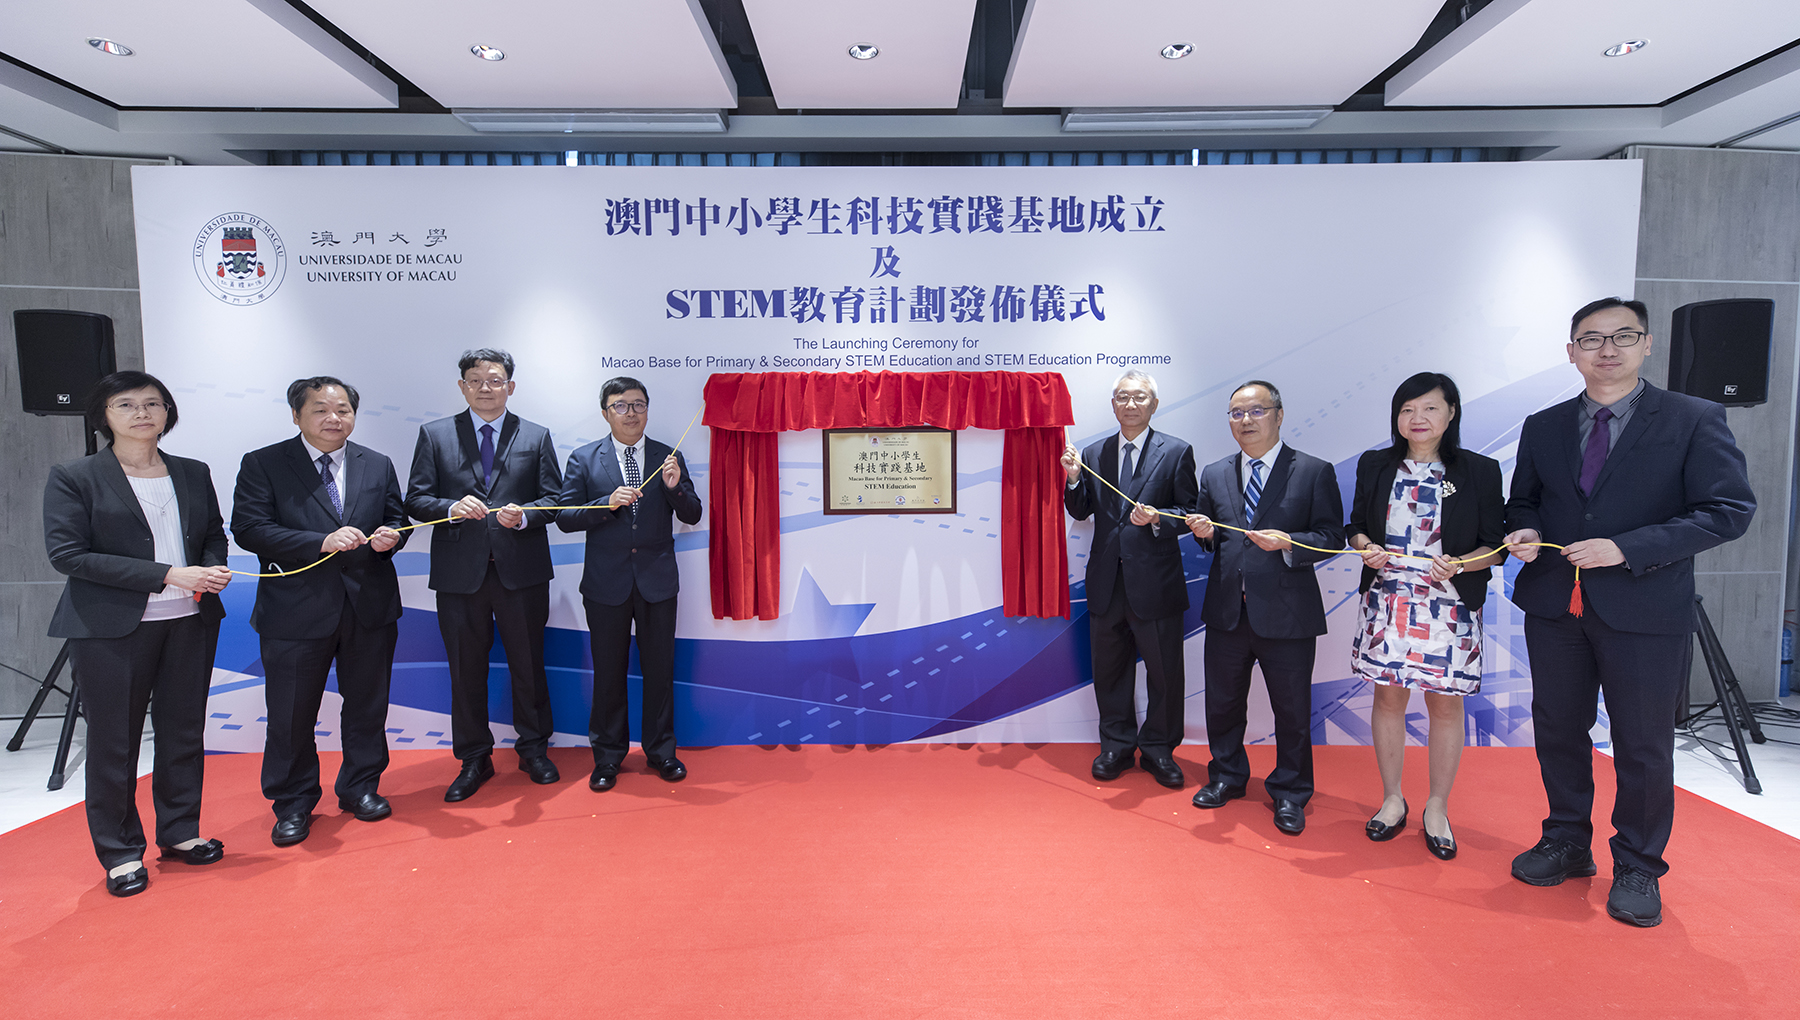 The inauguration ceremony for the Macao Base for Primary & Secondary STEM Education